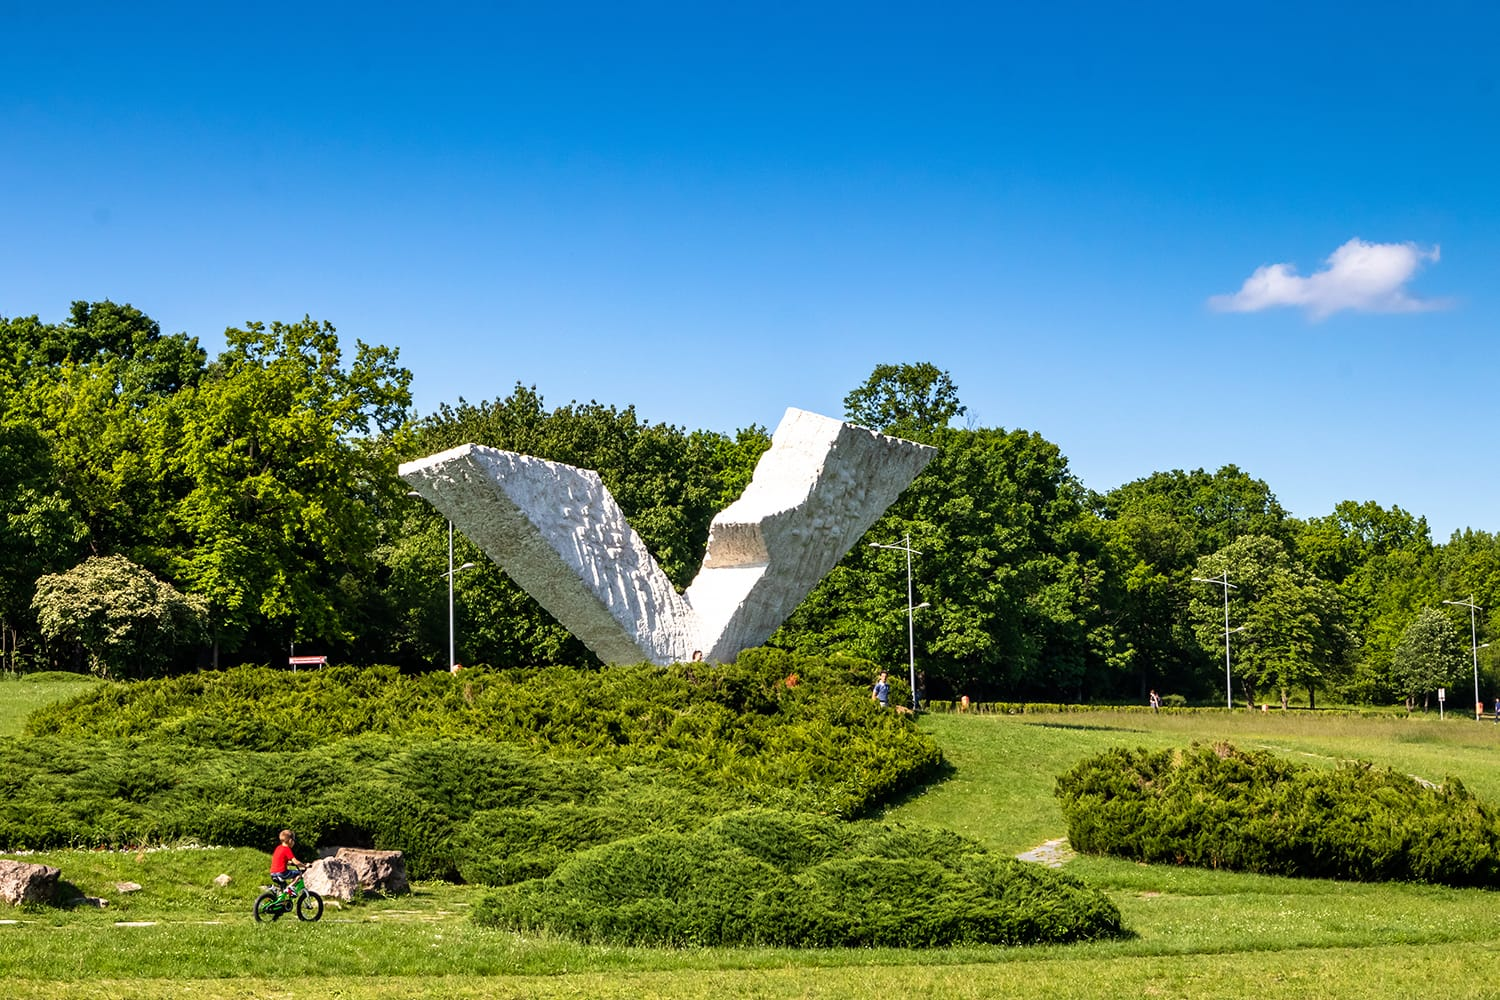 Monument broken wings, also called V/3, dedicated to the victims of WW2 in memorial park Sumarice, Kragujevac, Serbia